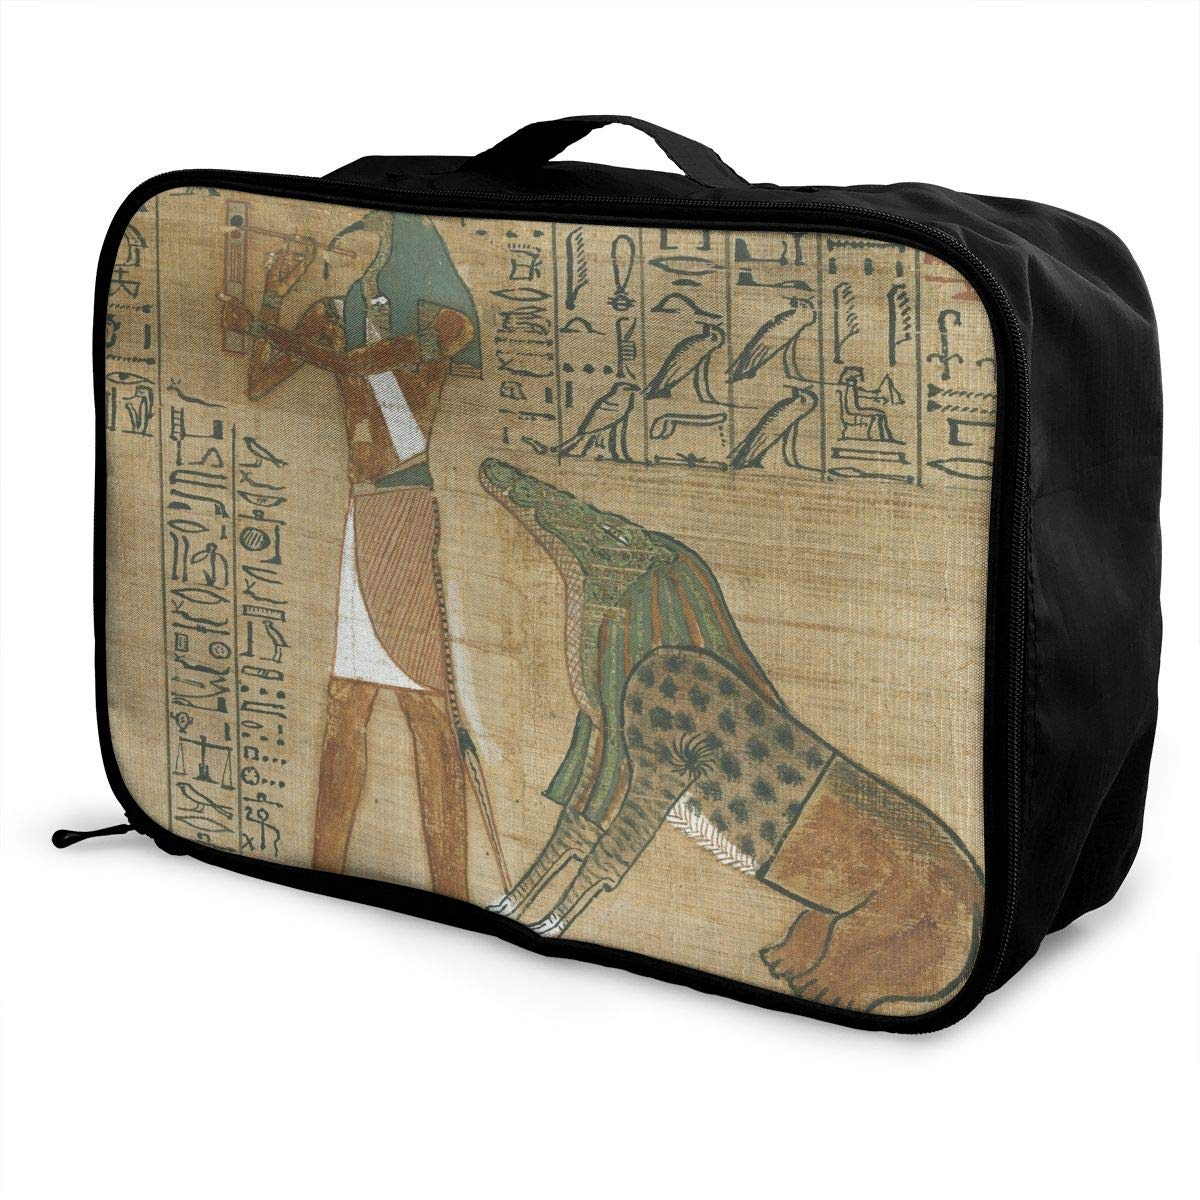 ADGAI People in The Egyptian Pyramid 2 Canvas Travel Weekender Bag,Fashion Custom Lightweight Large Capacity Portable Luggage Bag,Suitcase Trolley Bag